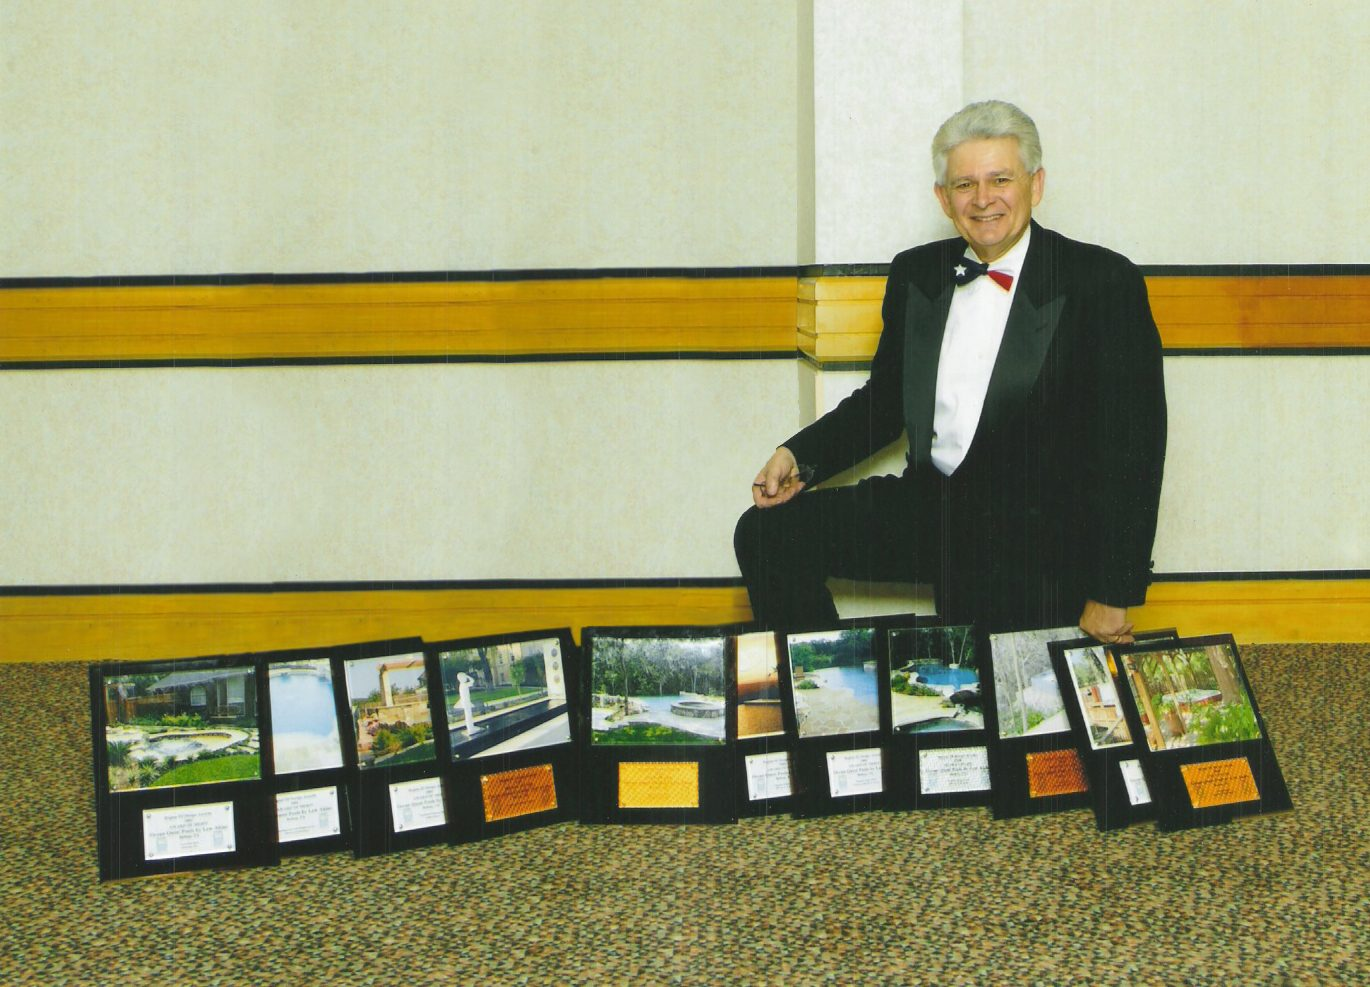 Lew with 11 of 12 Awards, 2004.jpg